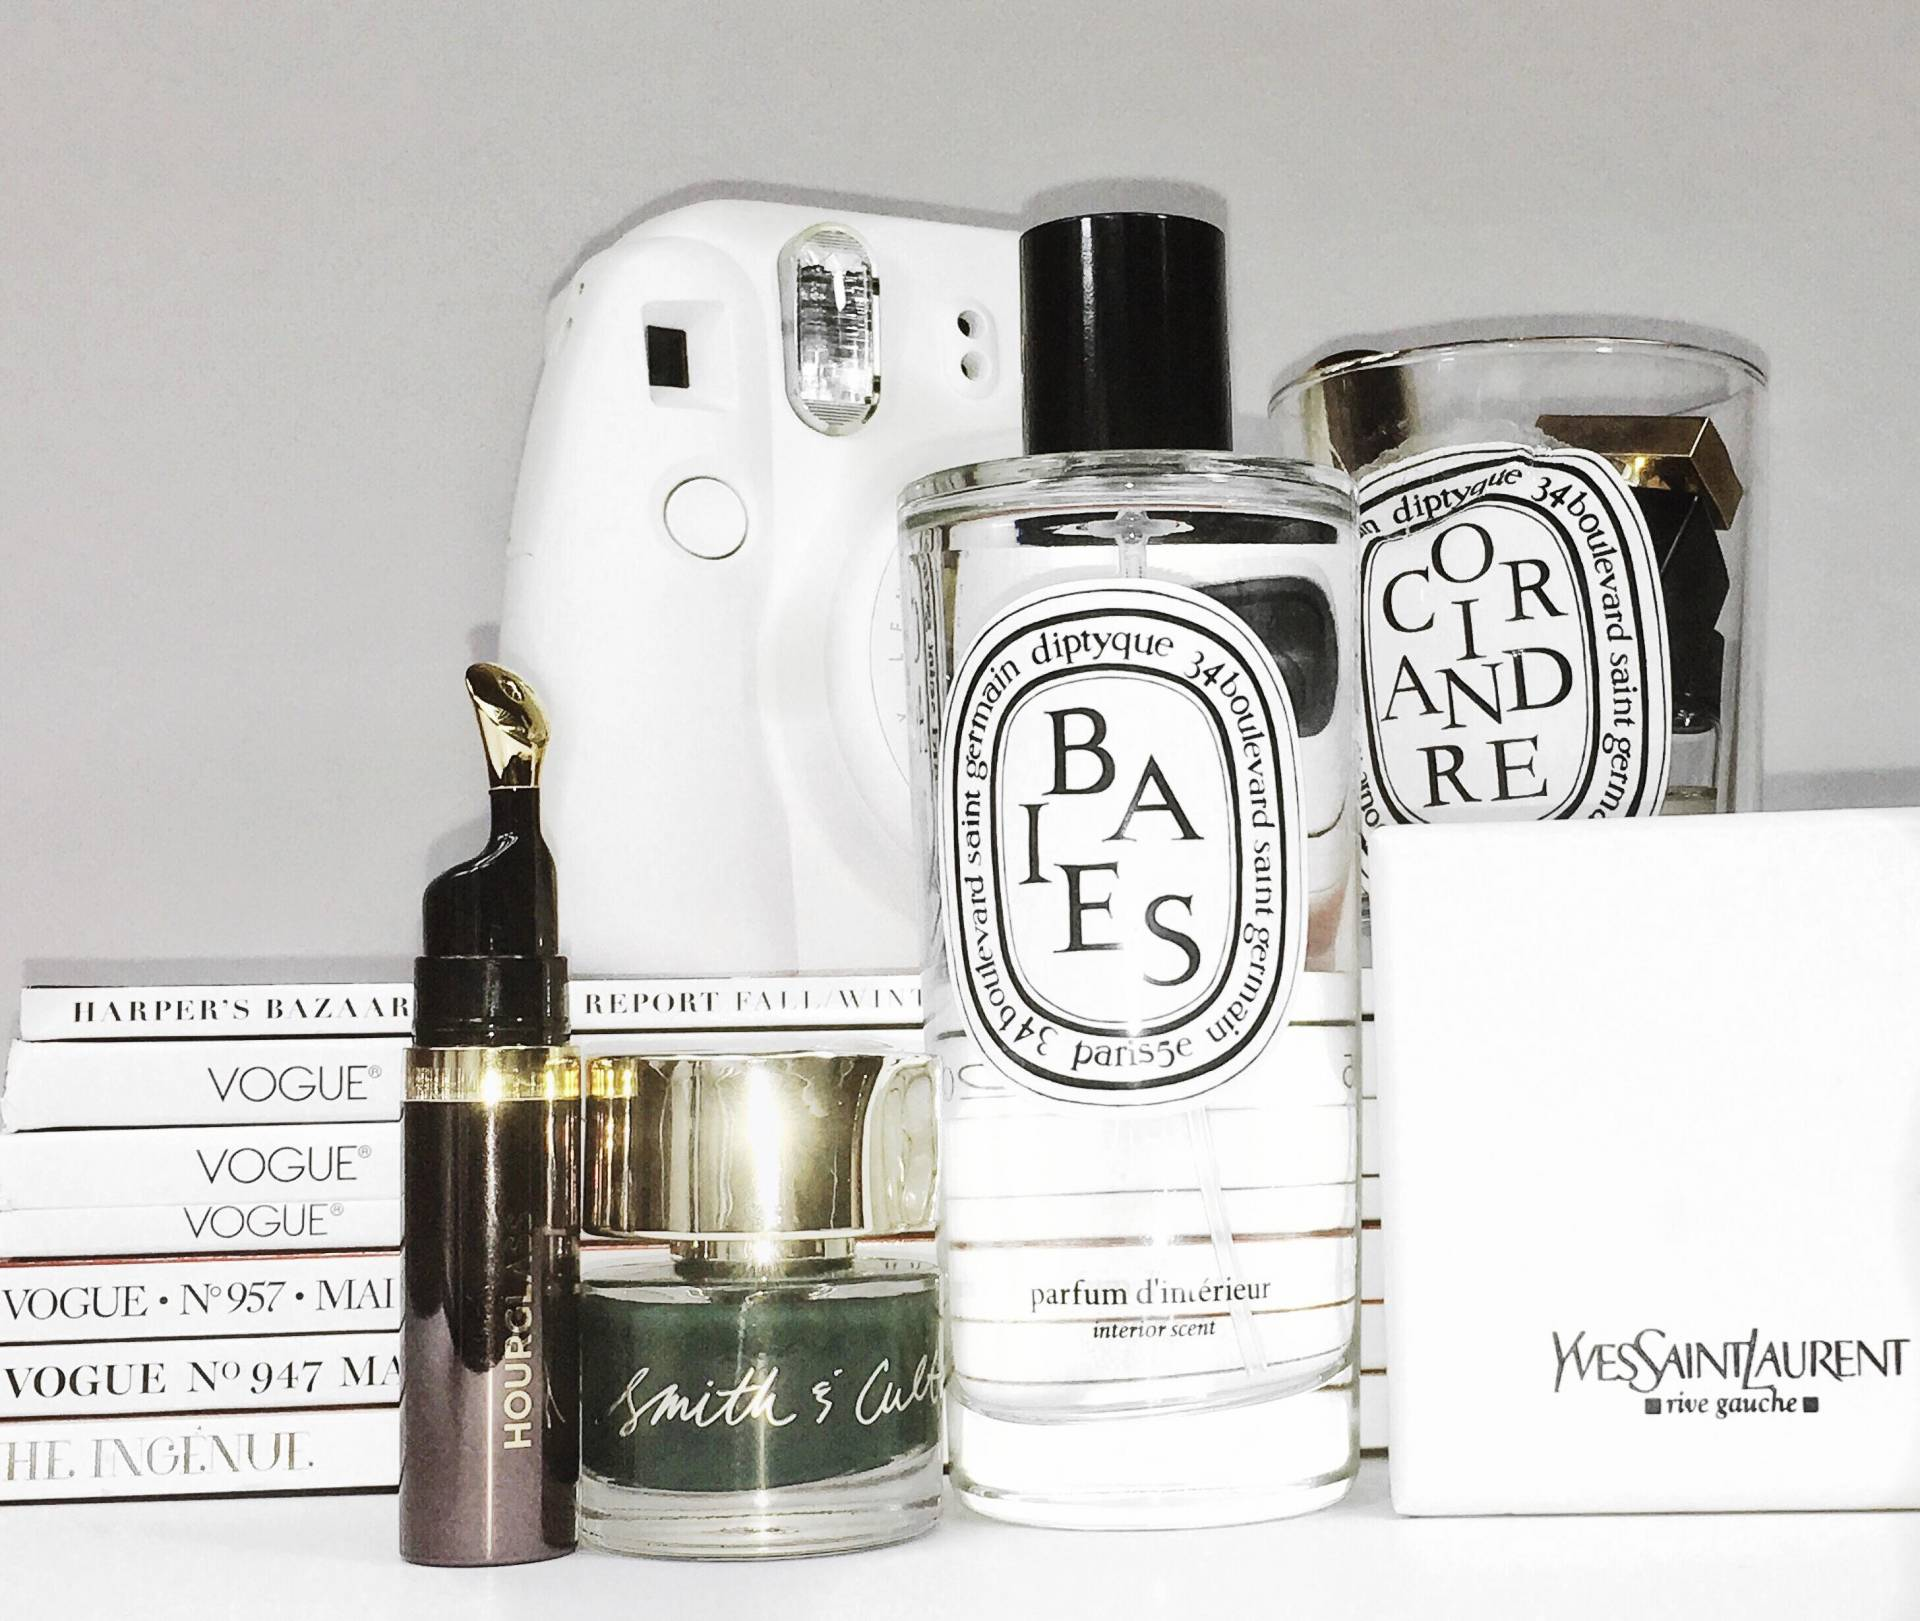 diptyque-baise-room-spray-smith-cult-darjeeling-darling-hourglass-lip-oil-2